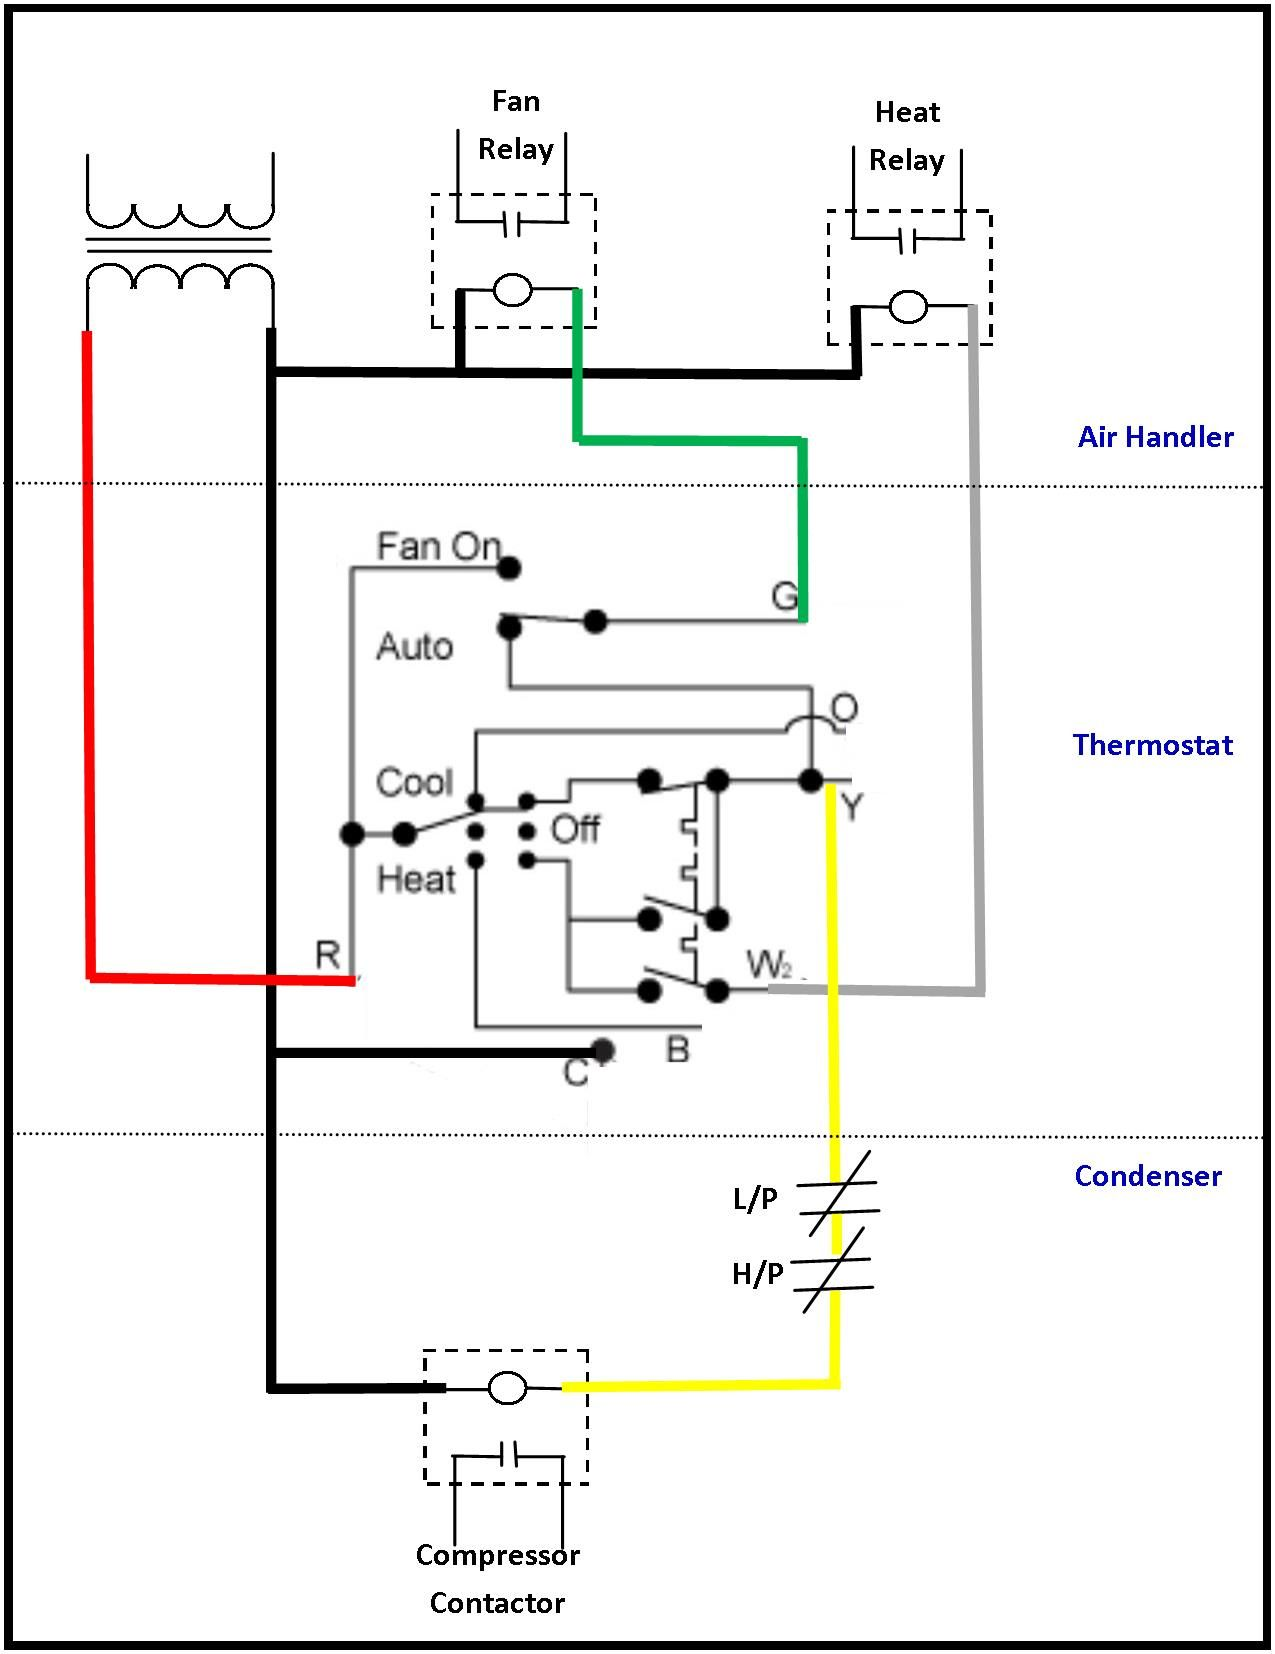 24 Volt Transformer Wiring Diagram | Electrical circuit diagram, Thermostat  wiring, Electrical wiring diagramPinterest